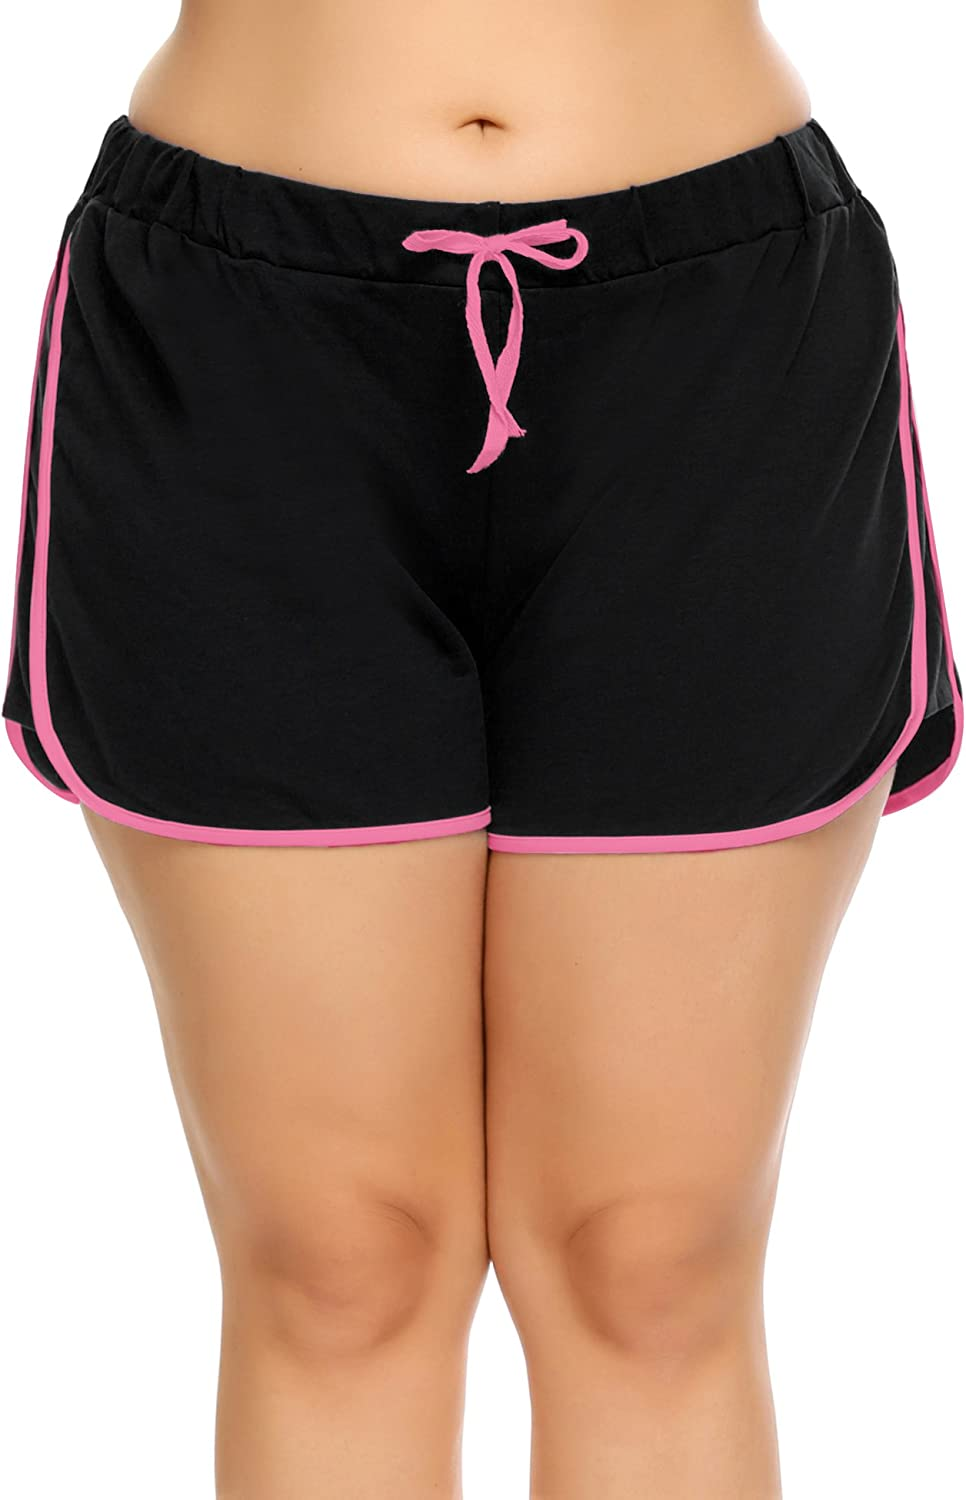 INVOLAND Women Dolphin Shorts Plus Size Running Short for Workout Gym Sports Active Yoga